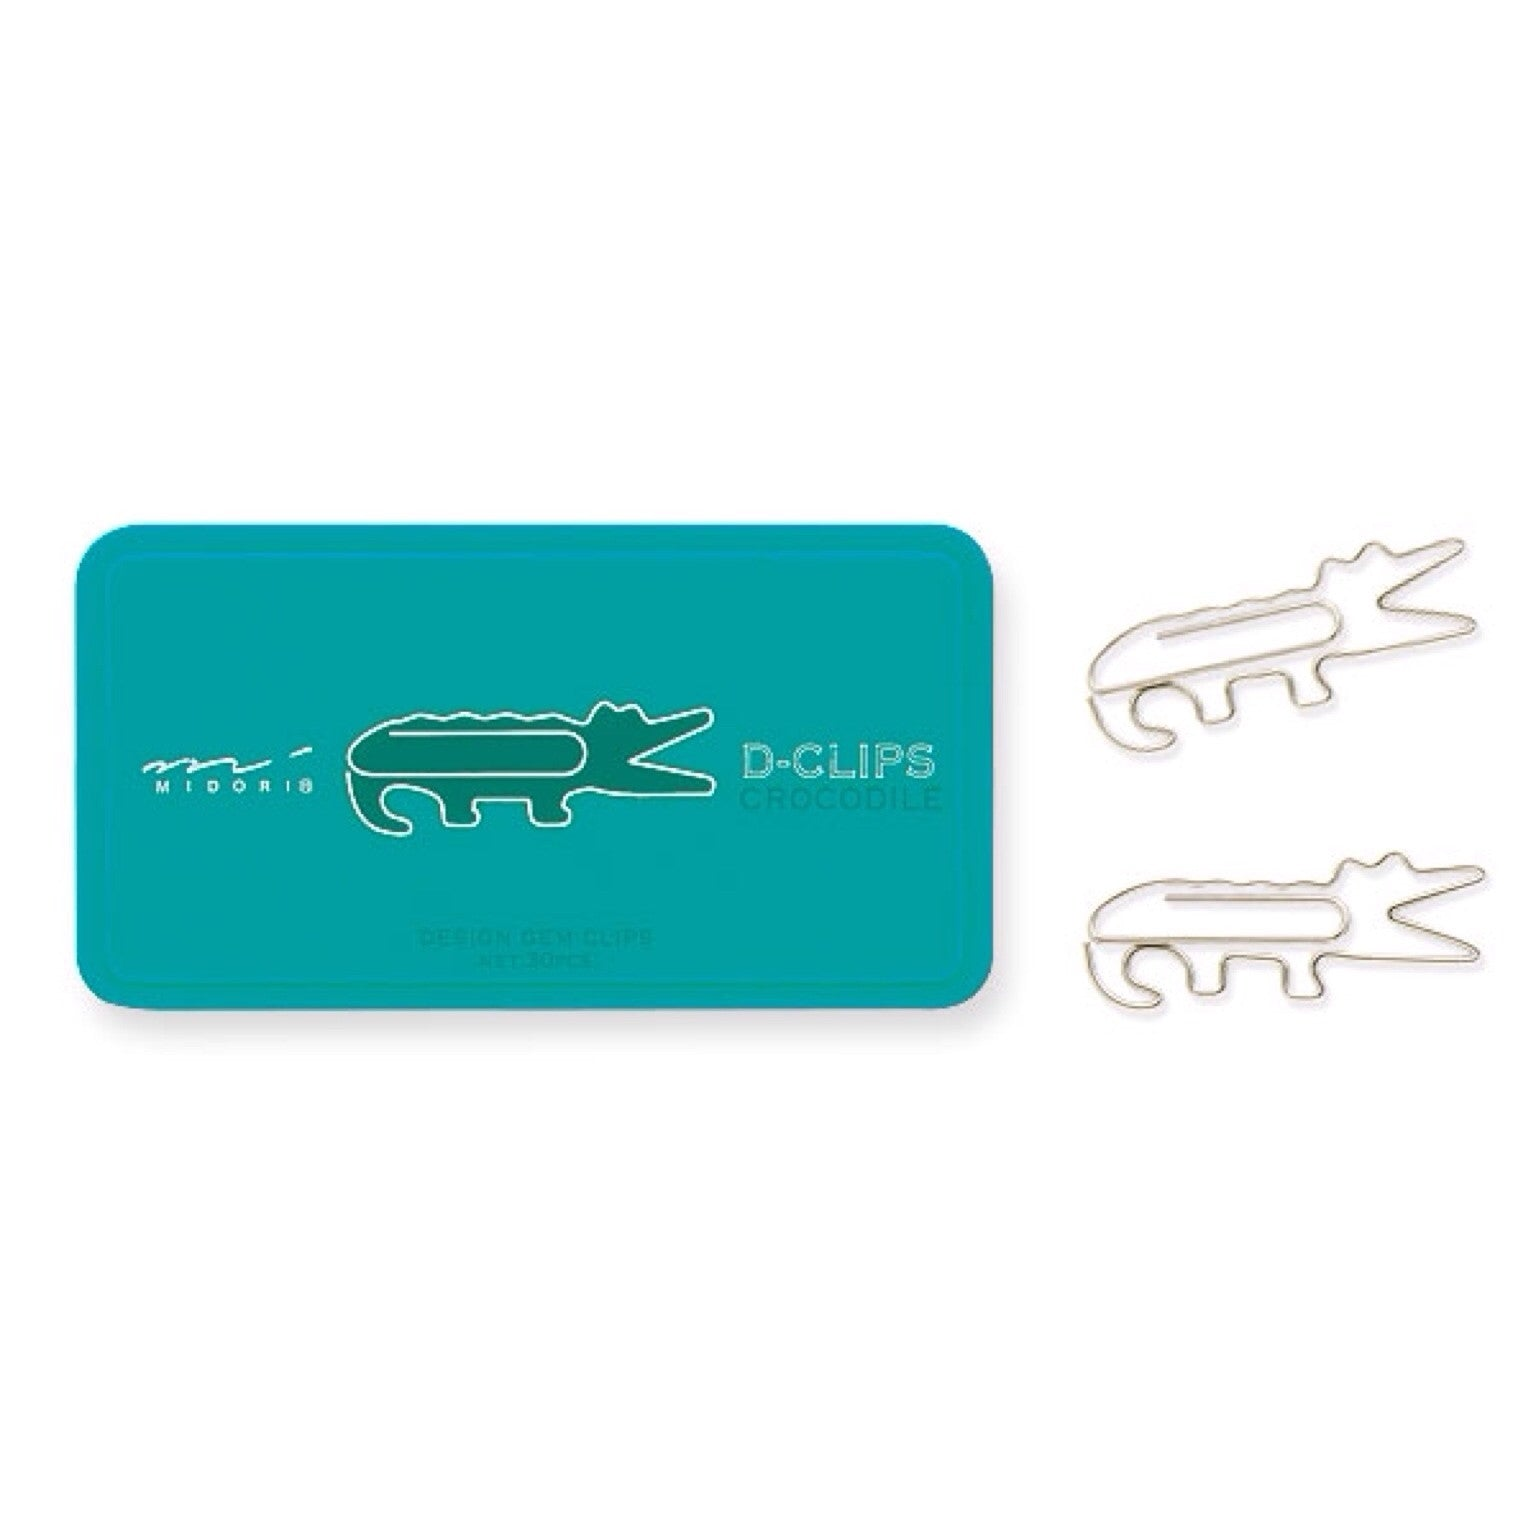 Crocodile D-Clips - 30pcs.